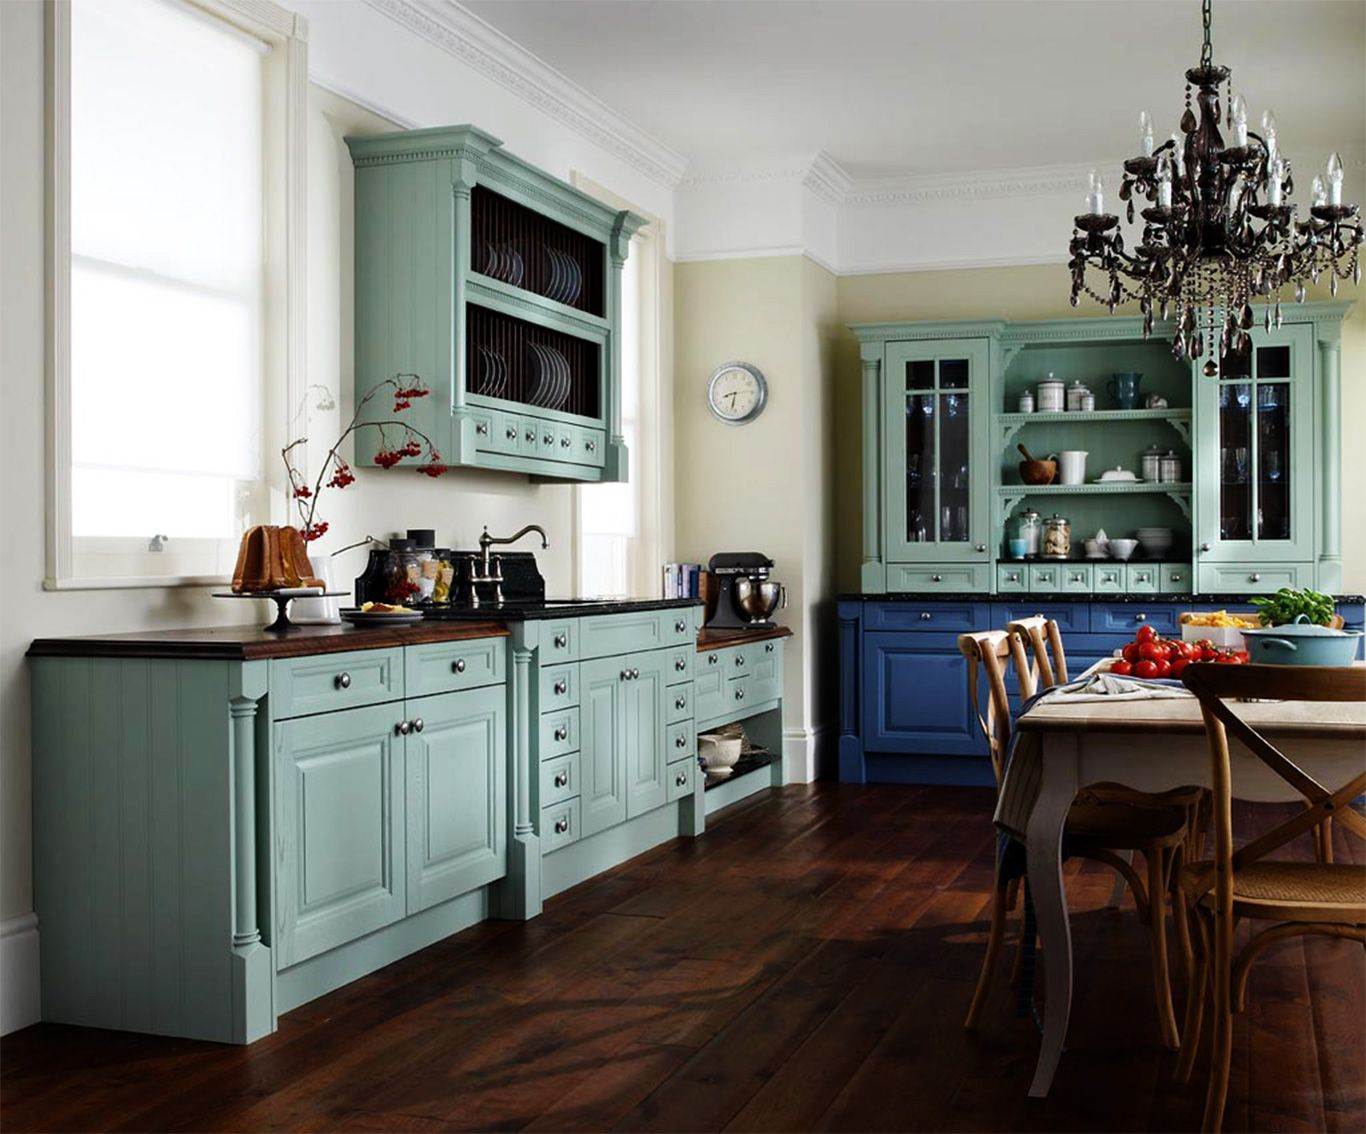 Painted Kitchen Cabinets Ideas 19 Antique White Kitchen Cabinets Ideas With Picture Best .